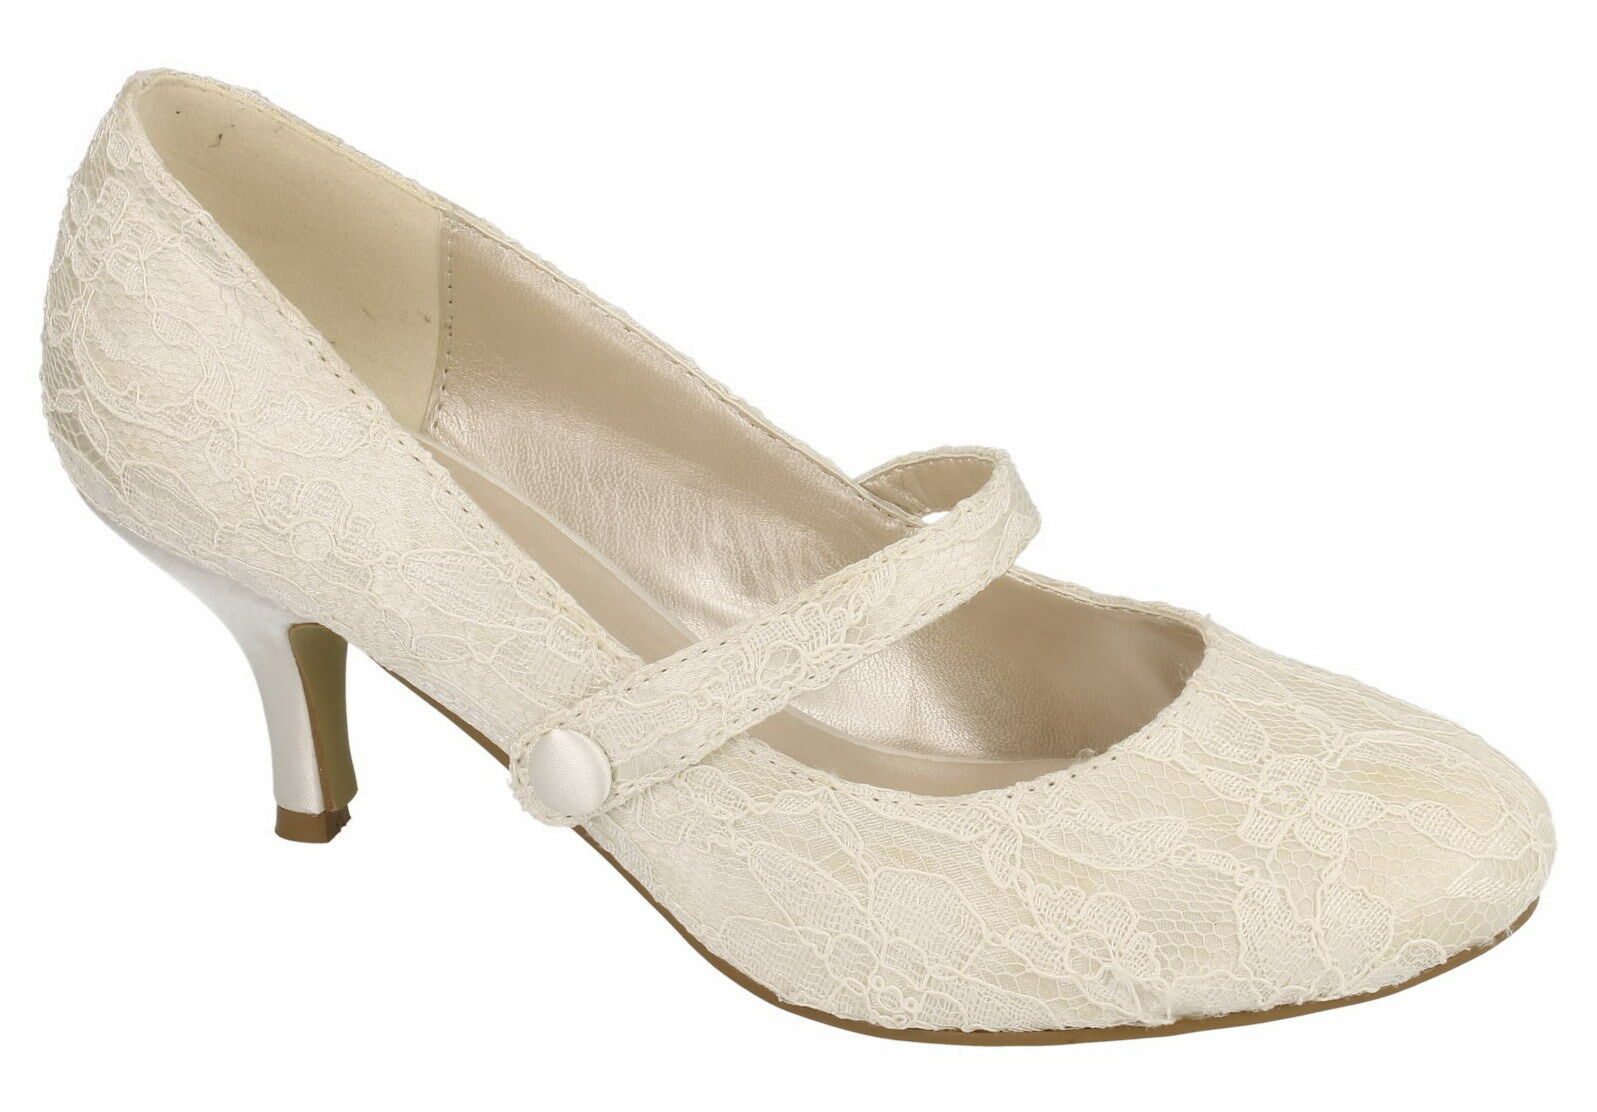 LADIES ANNE MICHELLE IVORY SATIN WEDDING LACE SHOES F9753